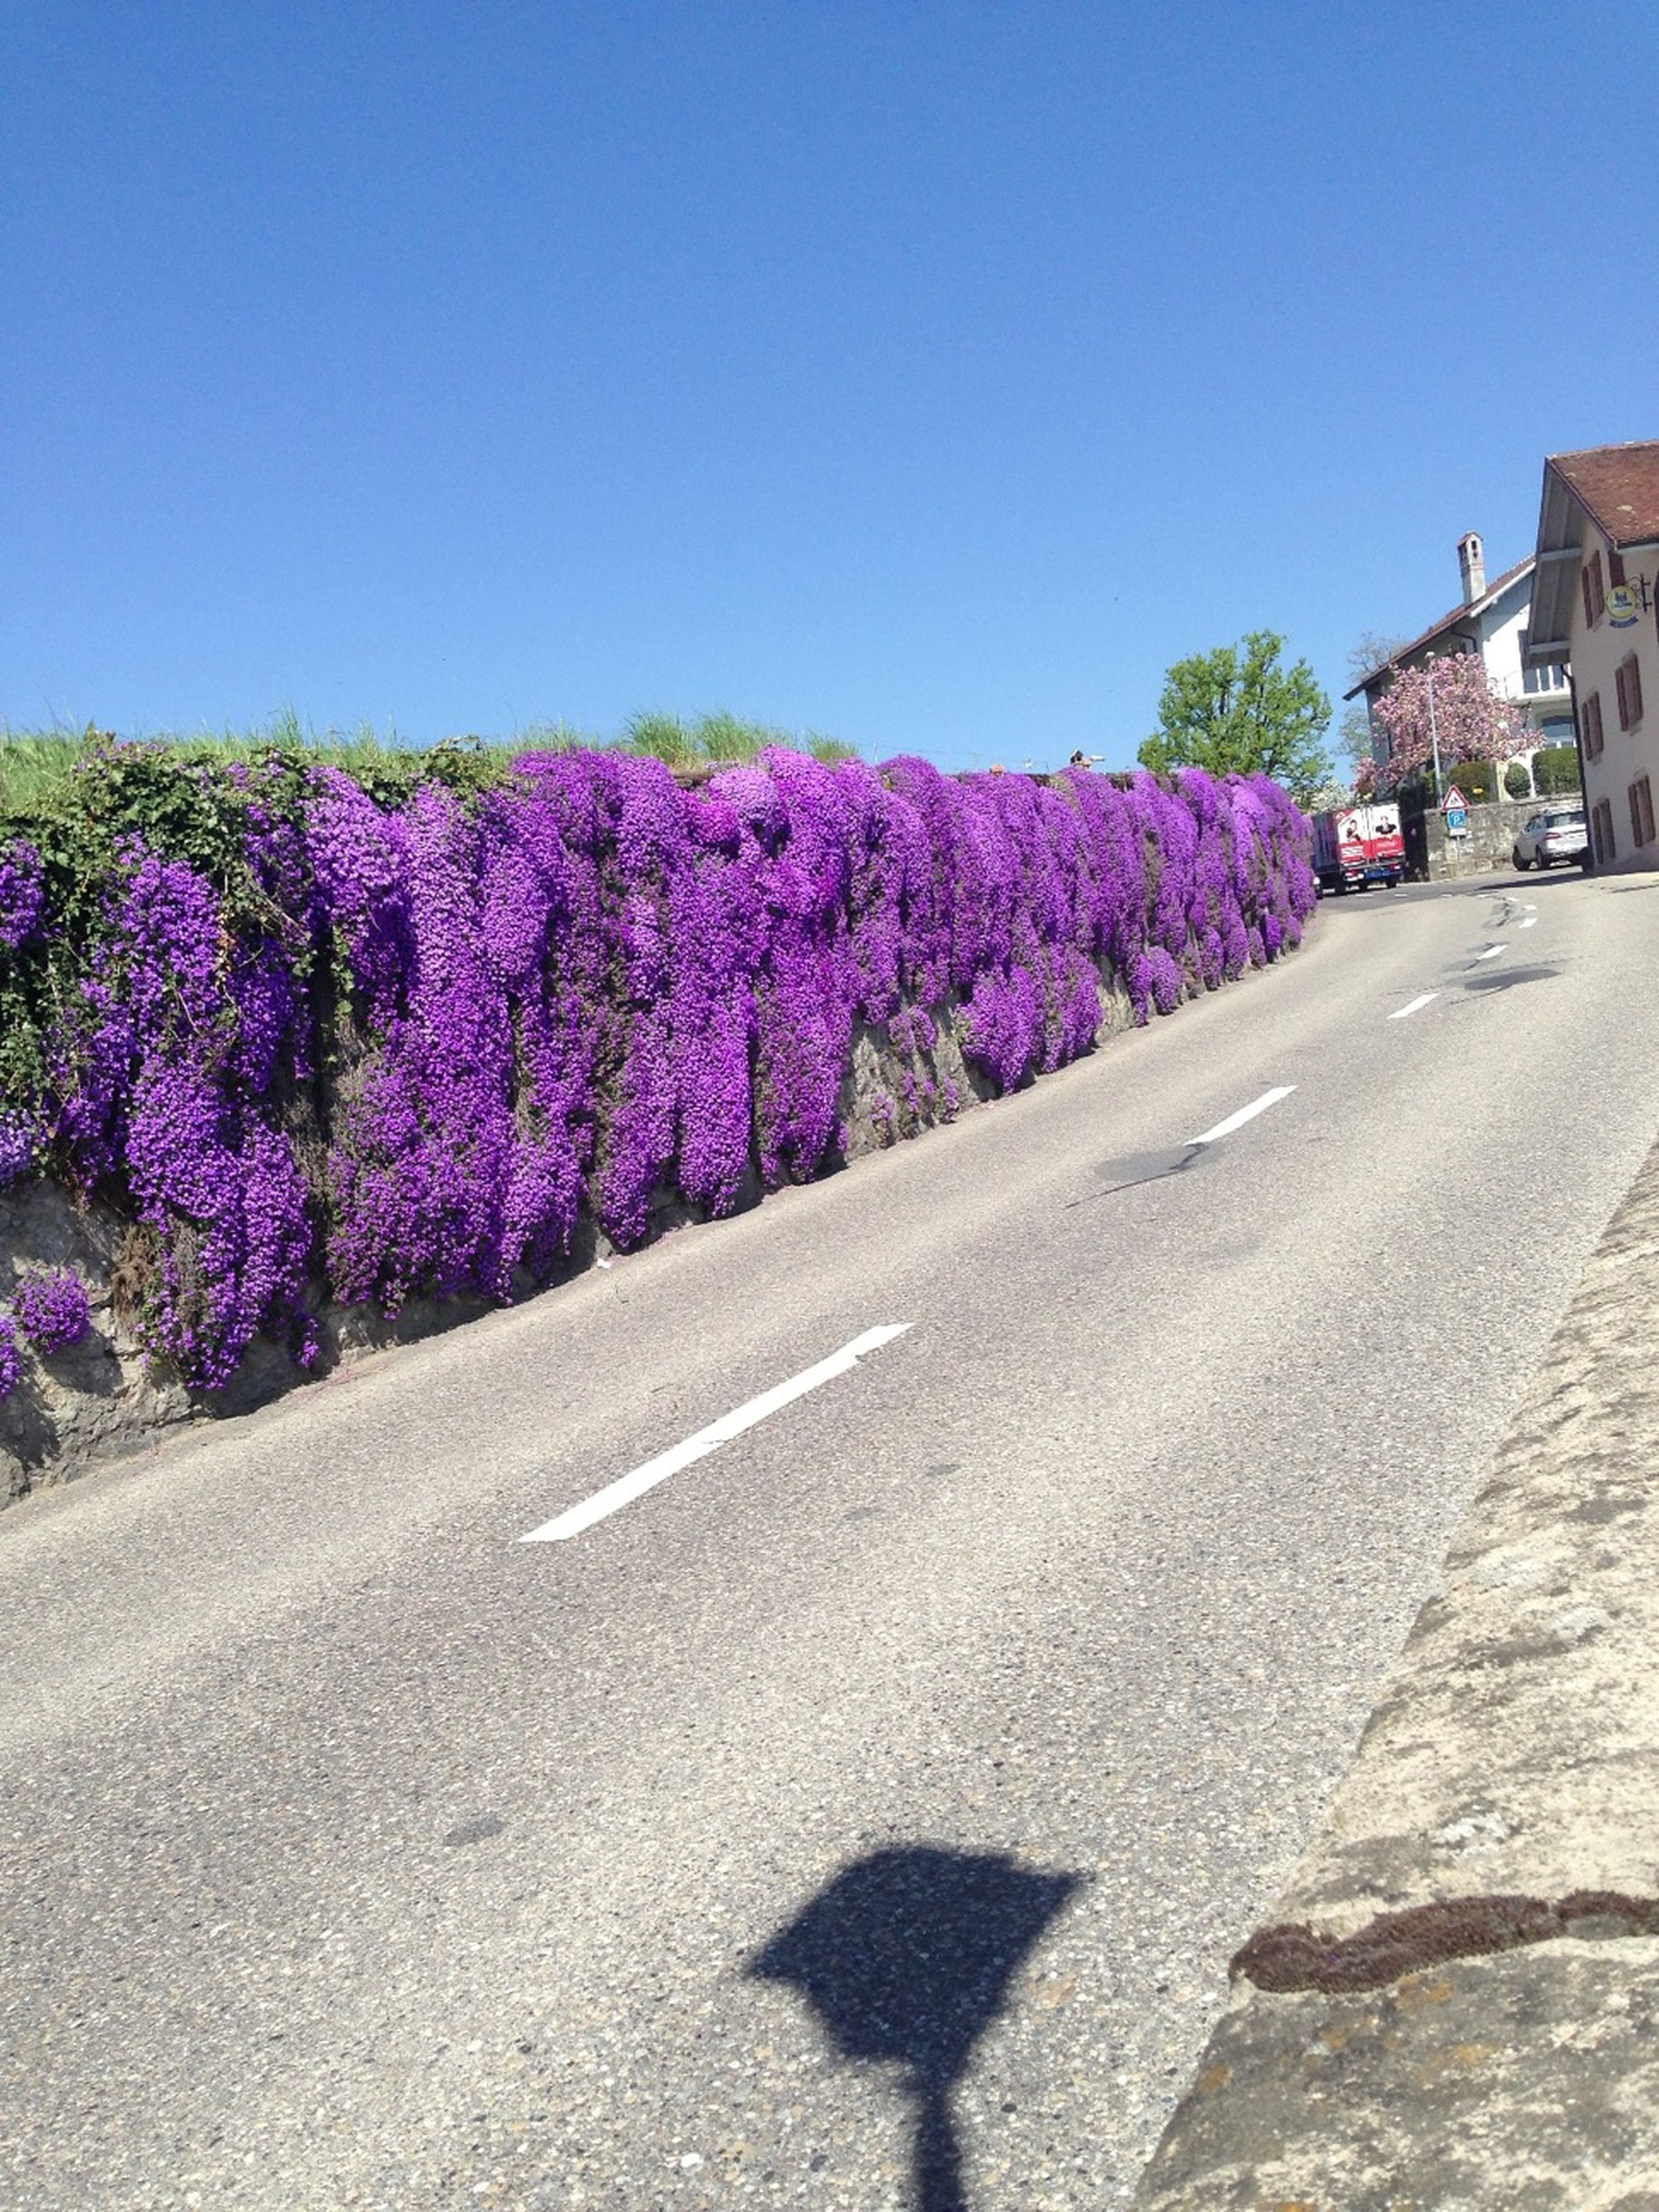 clear sky, flower, blue, road, building exterior, built structure, street, architecture, copy space, transportation, road marking, purple, growth, outdoors, sunlight, day, no people, asphalt, tree, plant